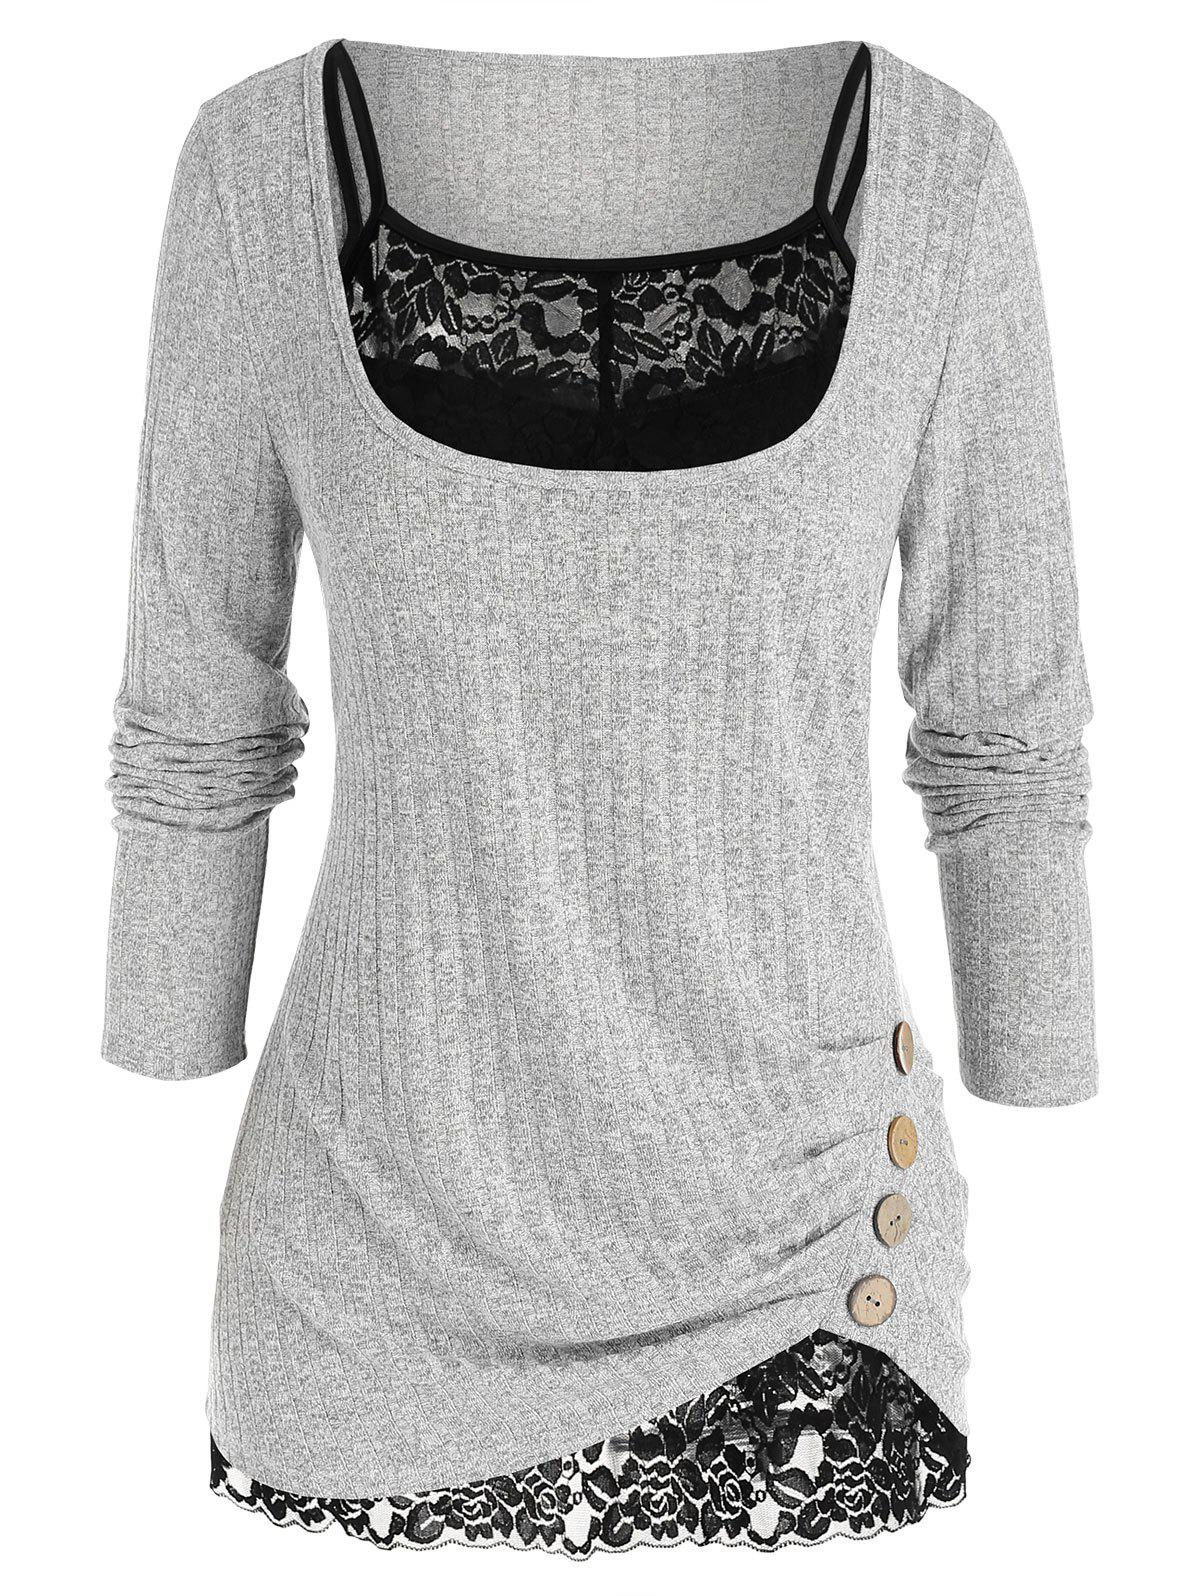 Plus Size Ruched U Neck Sweater with Lace Cami Top Set - LIGHT GRAY L